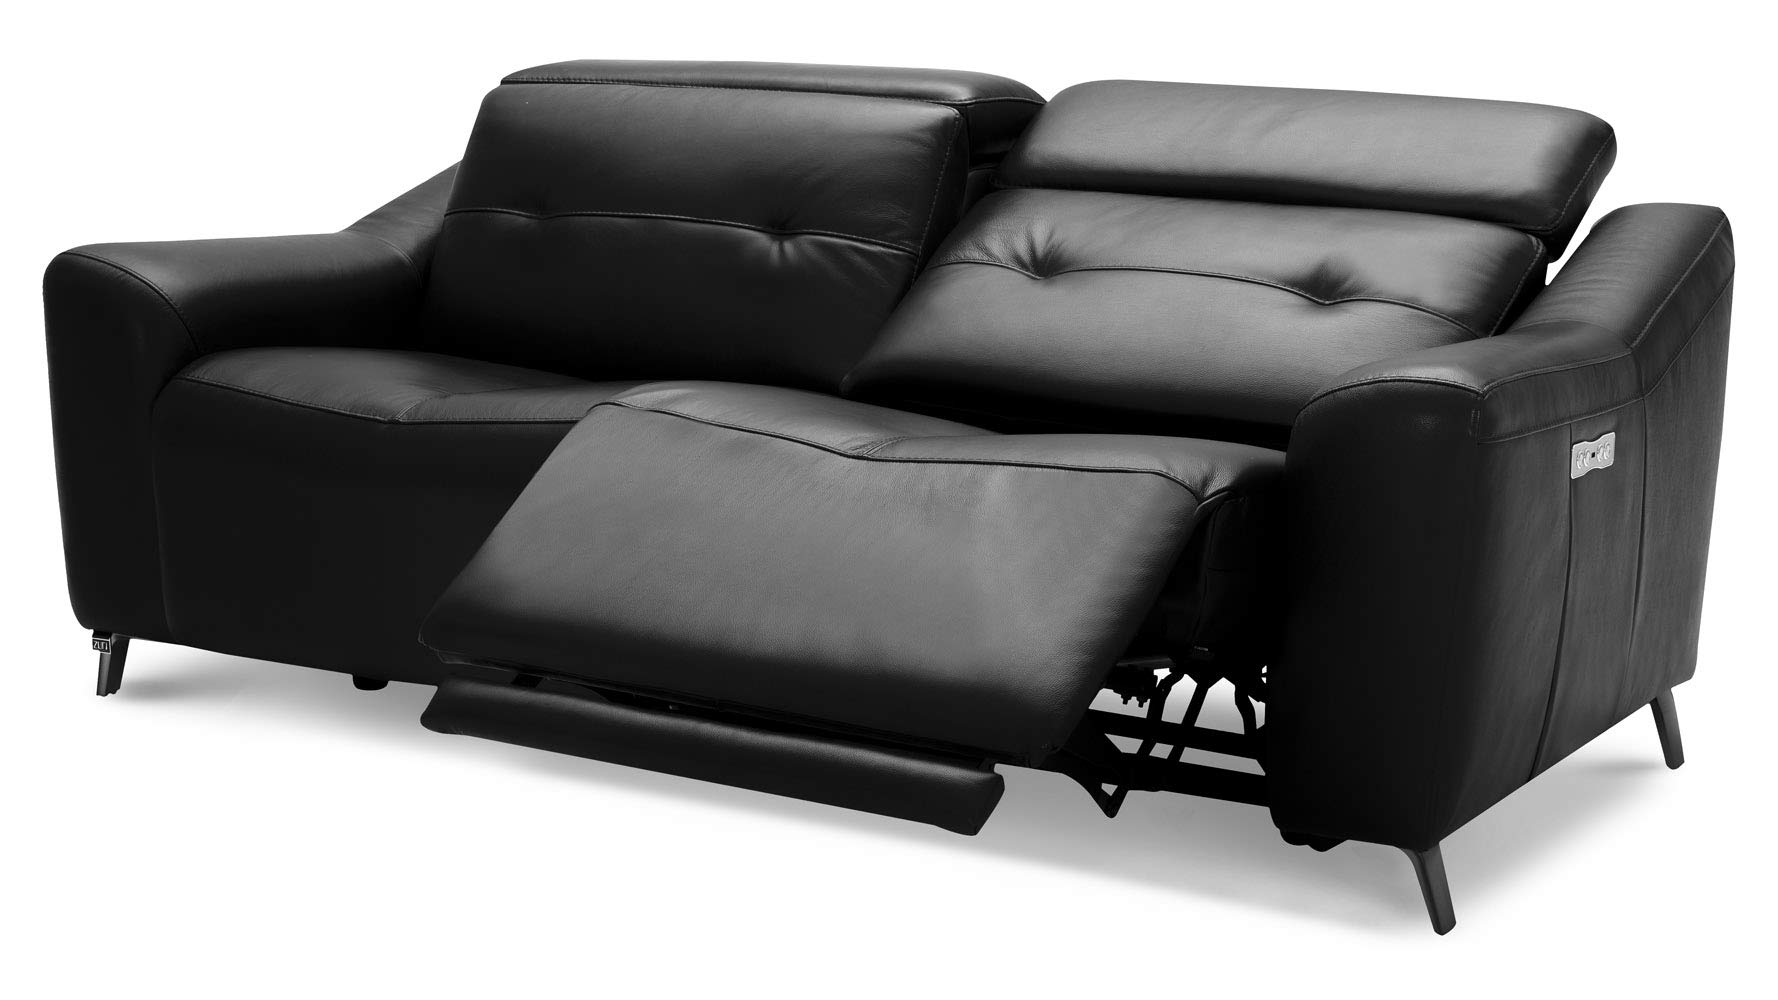 Zuri Furniture Modern Linq Power Reclining Black Leather Sofa Set with  Loveseat and Lounge Chair